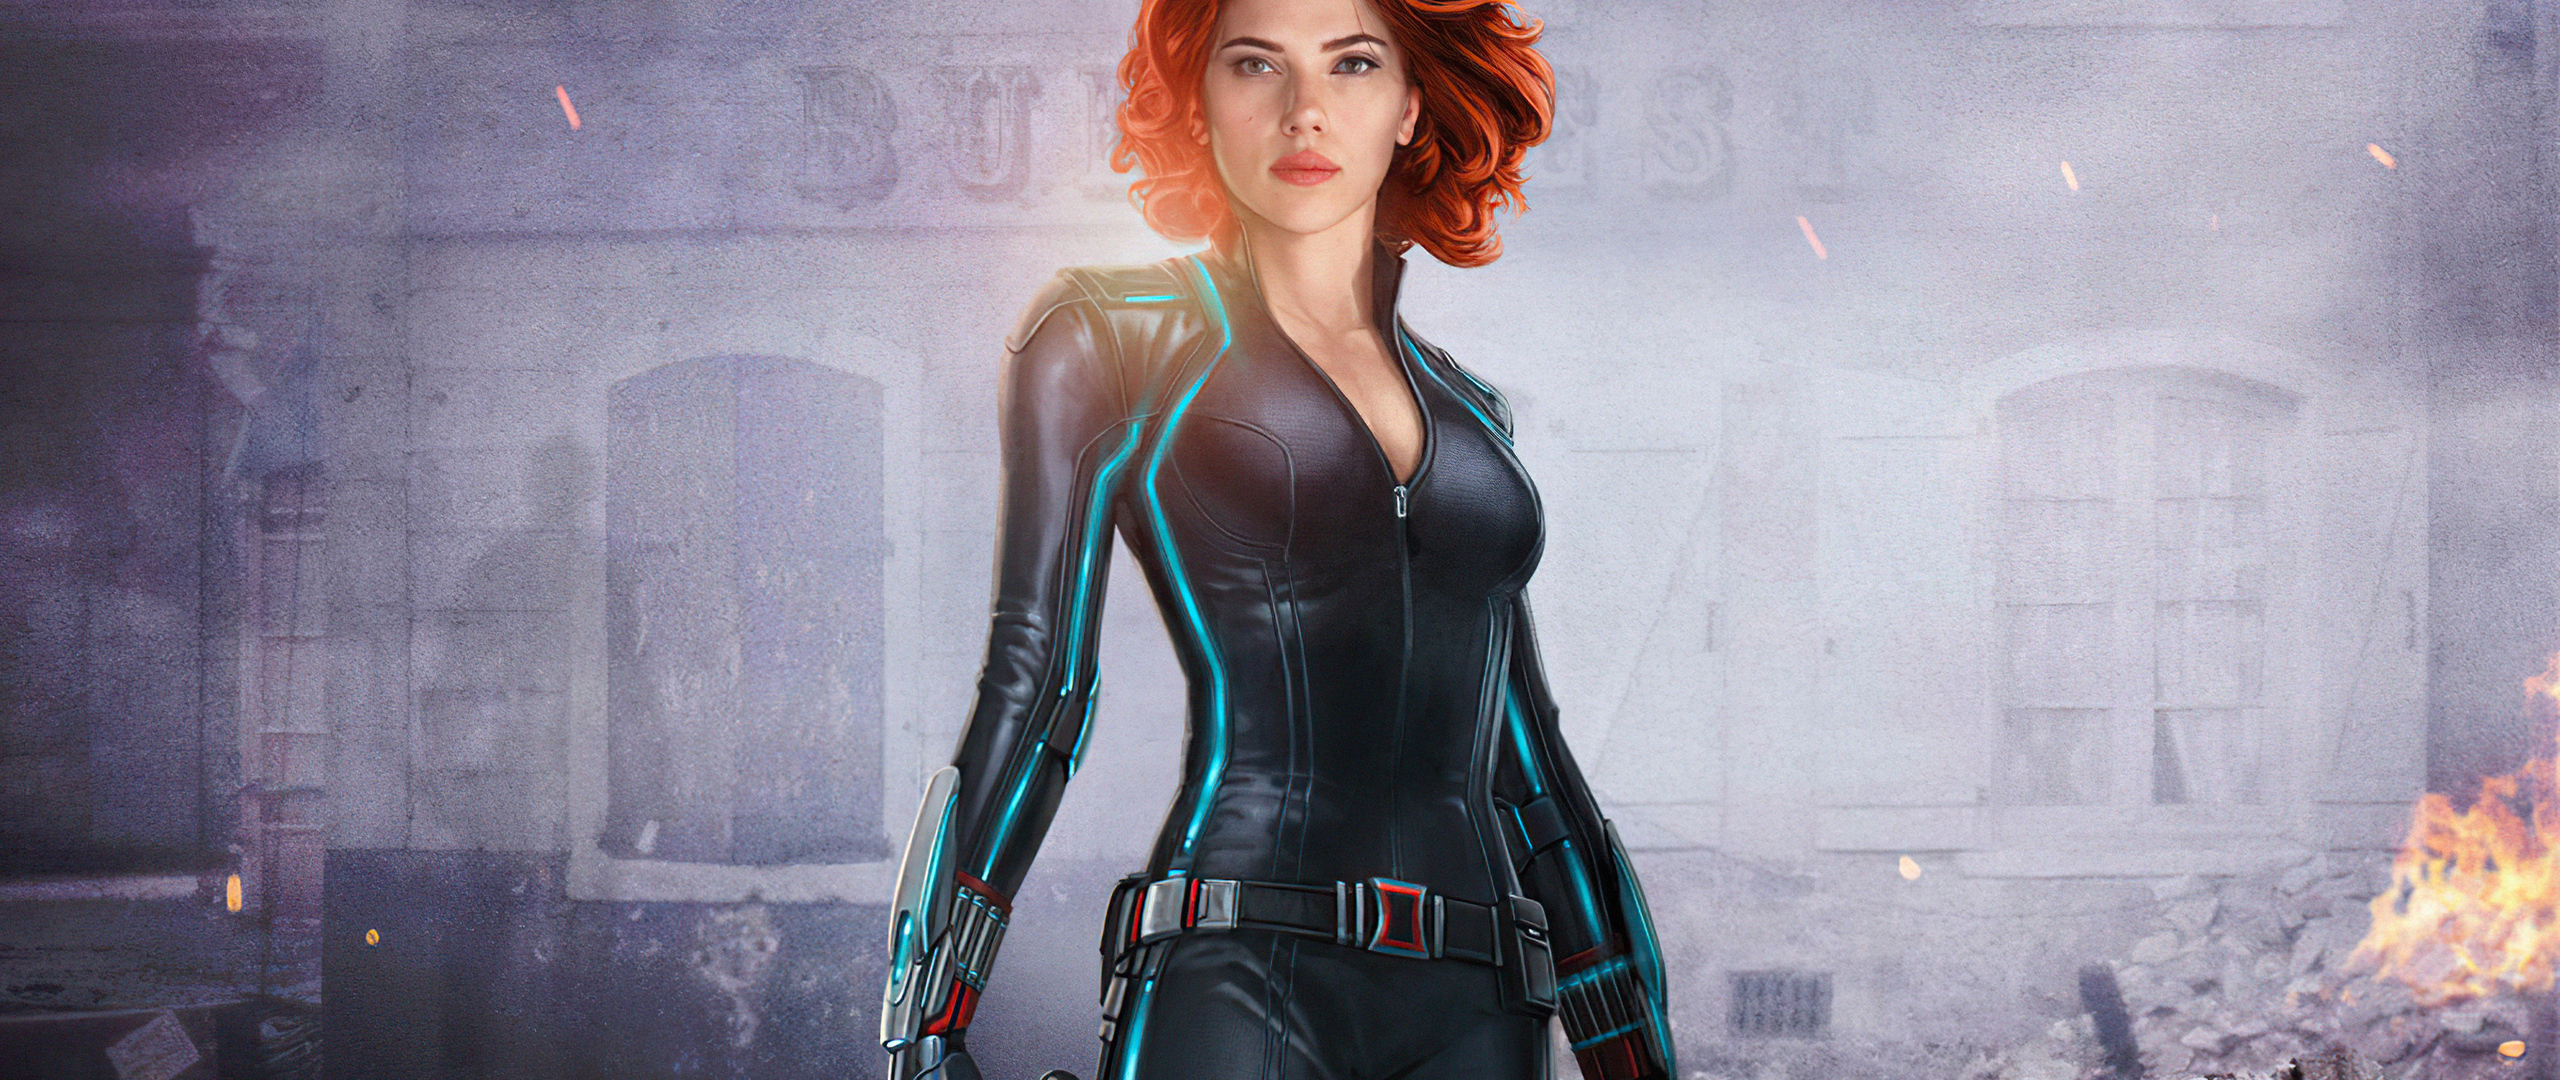 black-widow-red-hair-4k-96.jpg